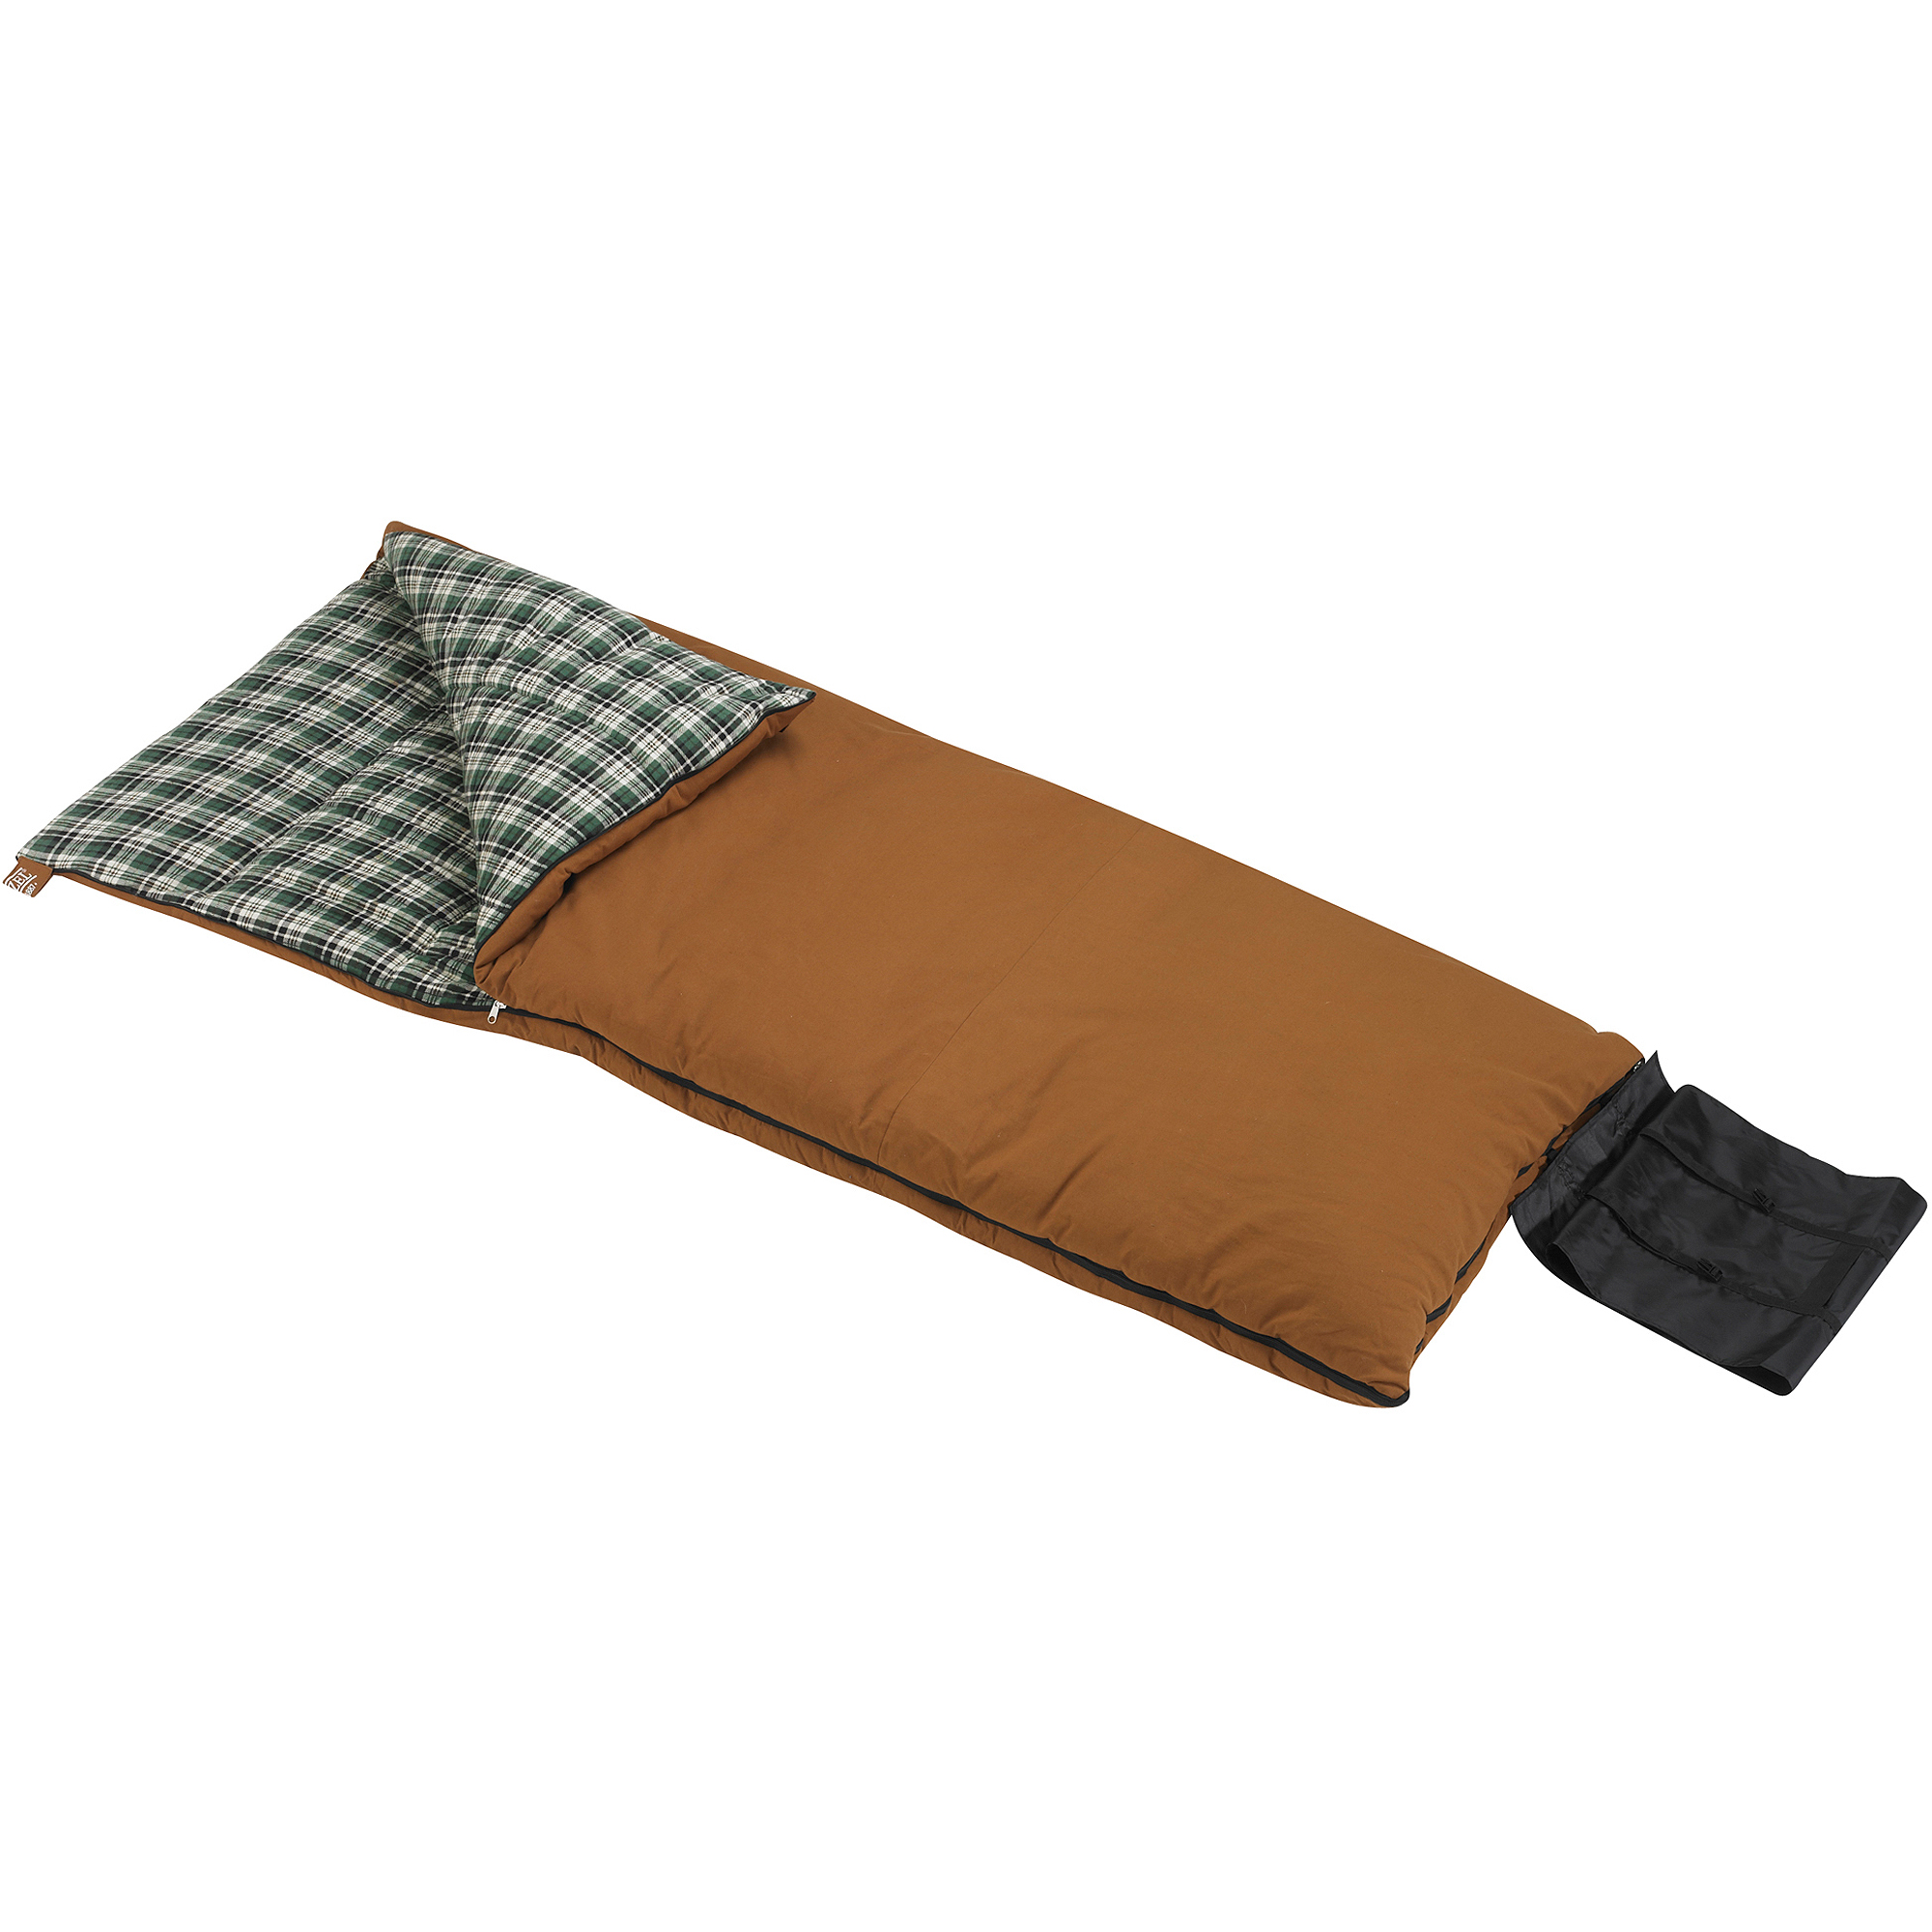 Wenzel Grande 0-Degree Sleeping Bag, Brown by Overstock